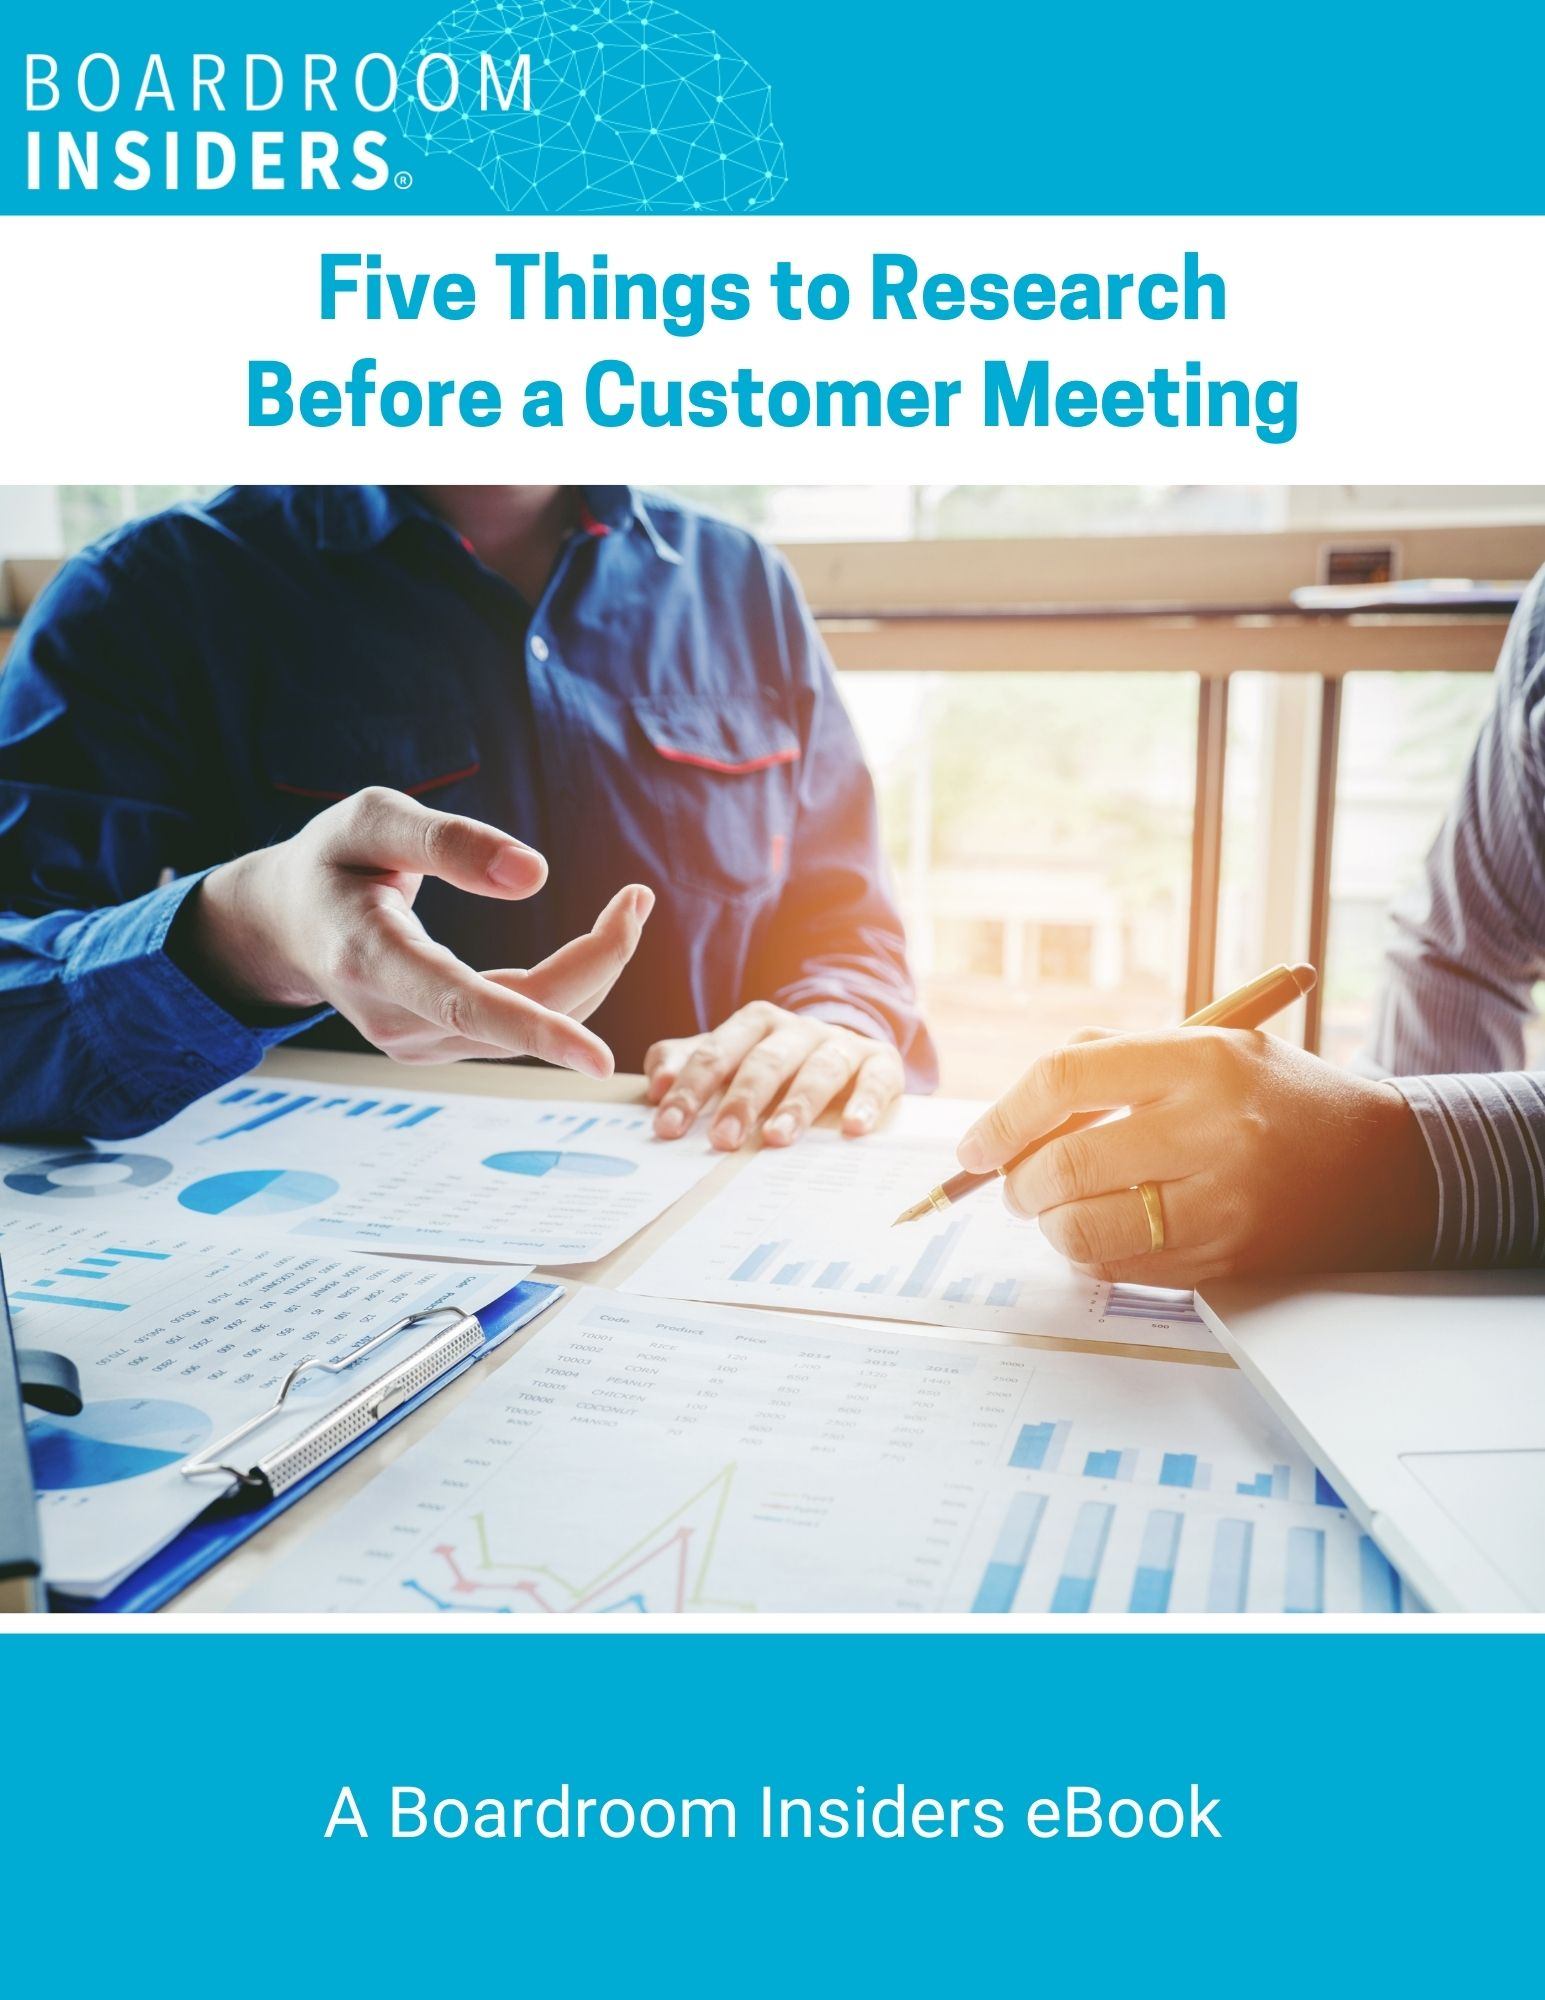 Five Things to Research Before a Customer Meeting